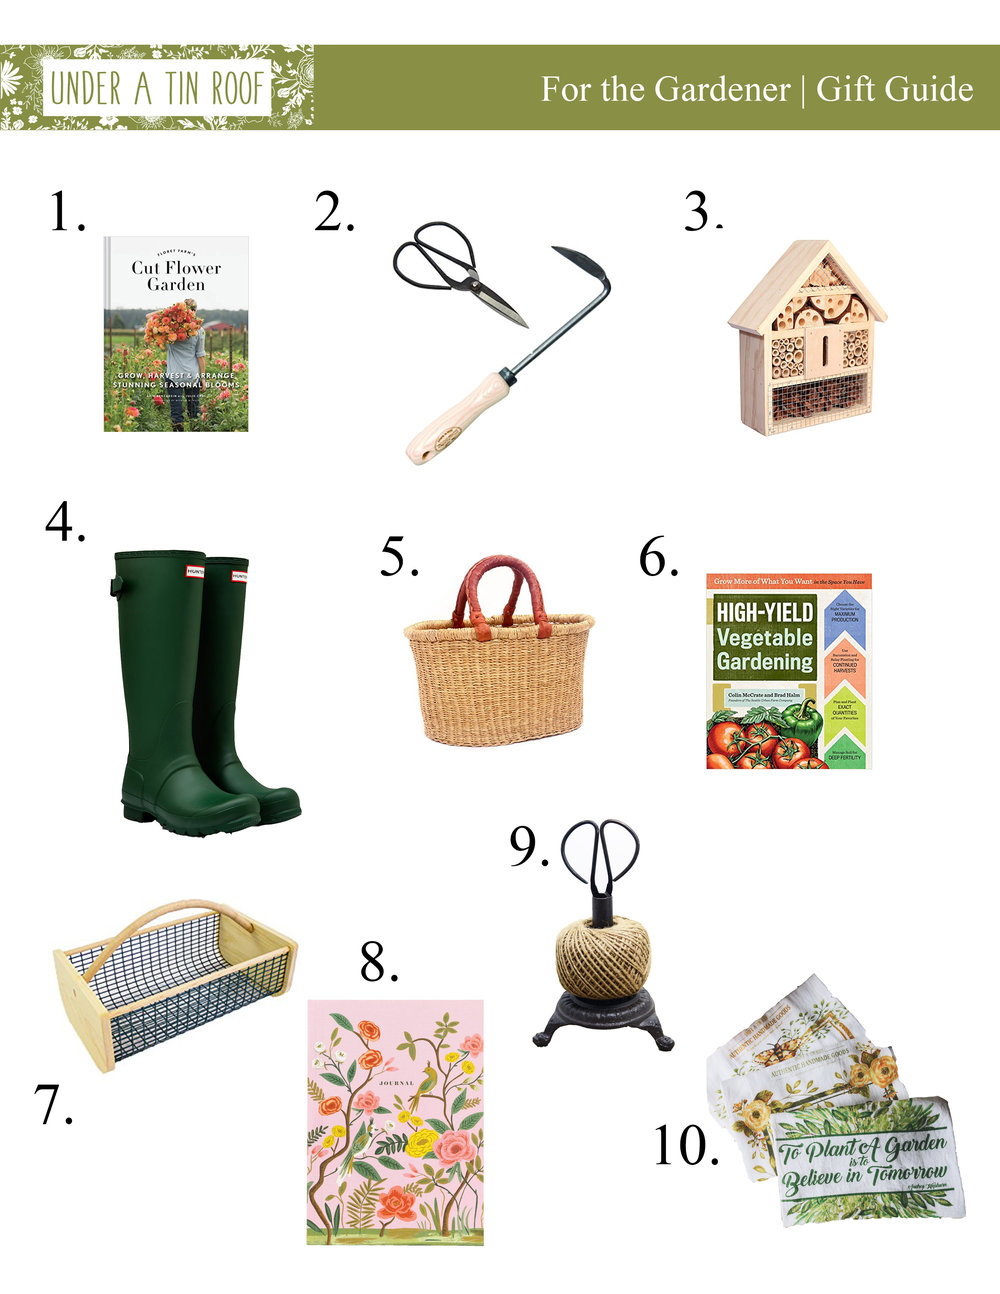 Gifts for the Gardener - Under A Tin Roof Blog